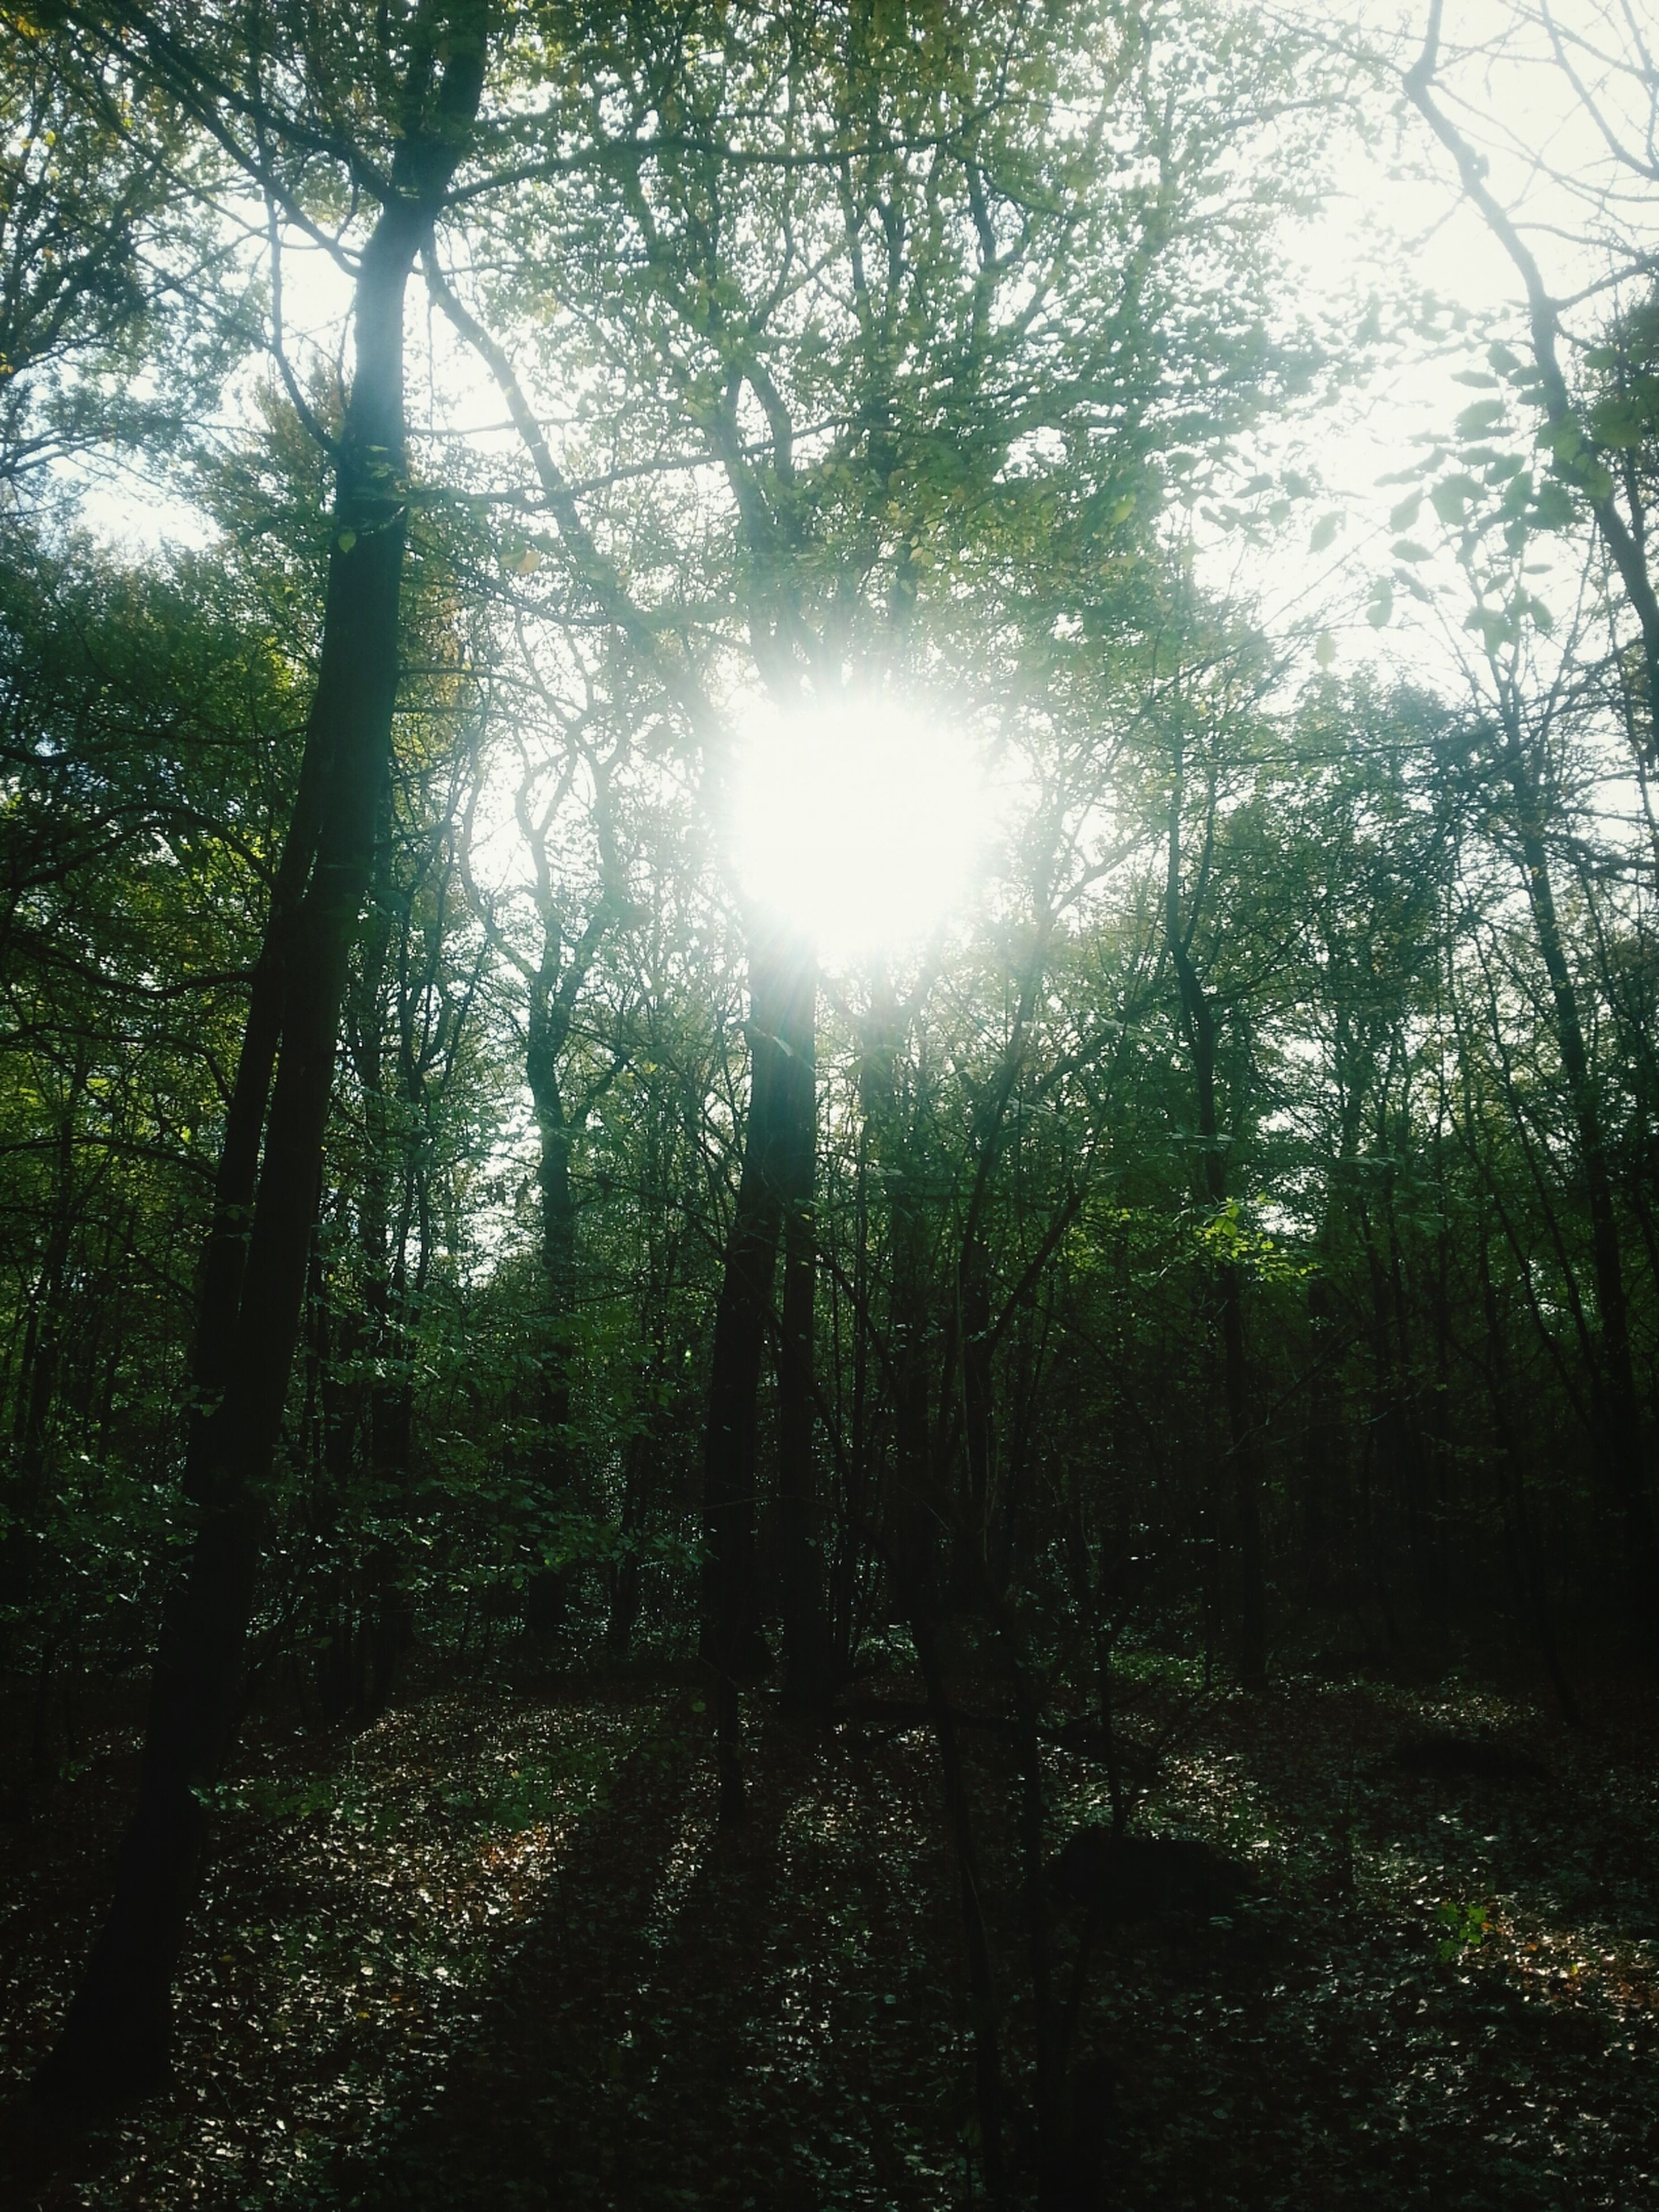 tree, sun, tranquility, sunlight, sunbeam, growth, tranquil scene, nature, forest, beauty in nature, lens flare, tree trunk, scenics, branch, woodland, sunny, back lit, non-urban scene, day, landscape